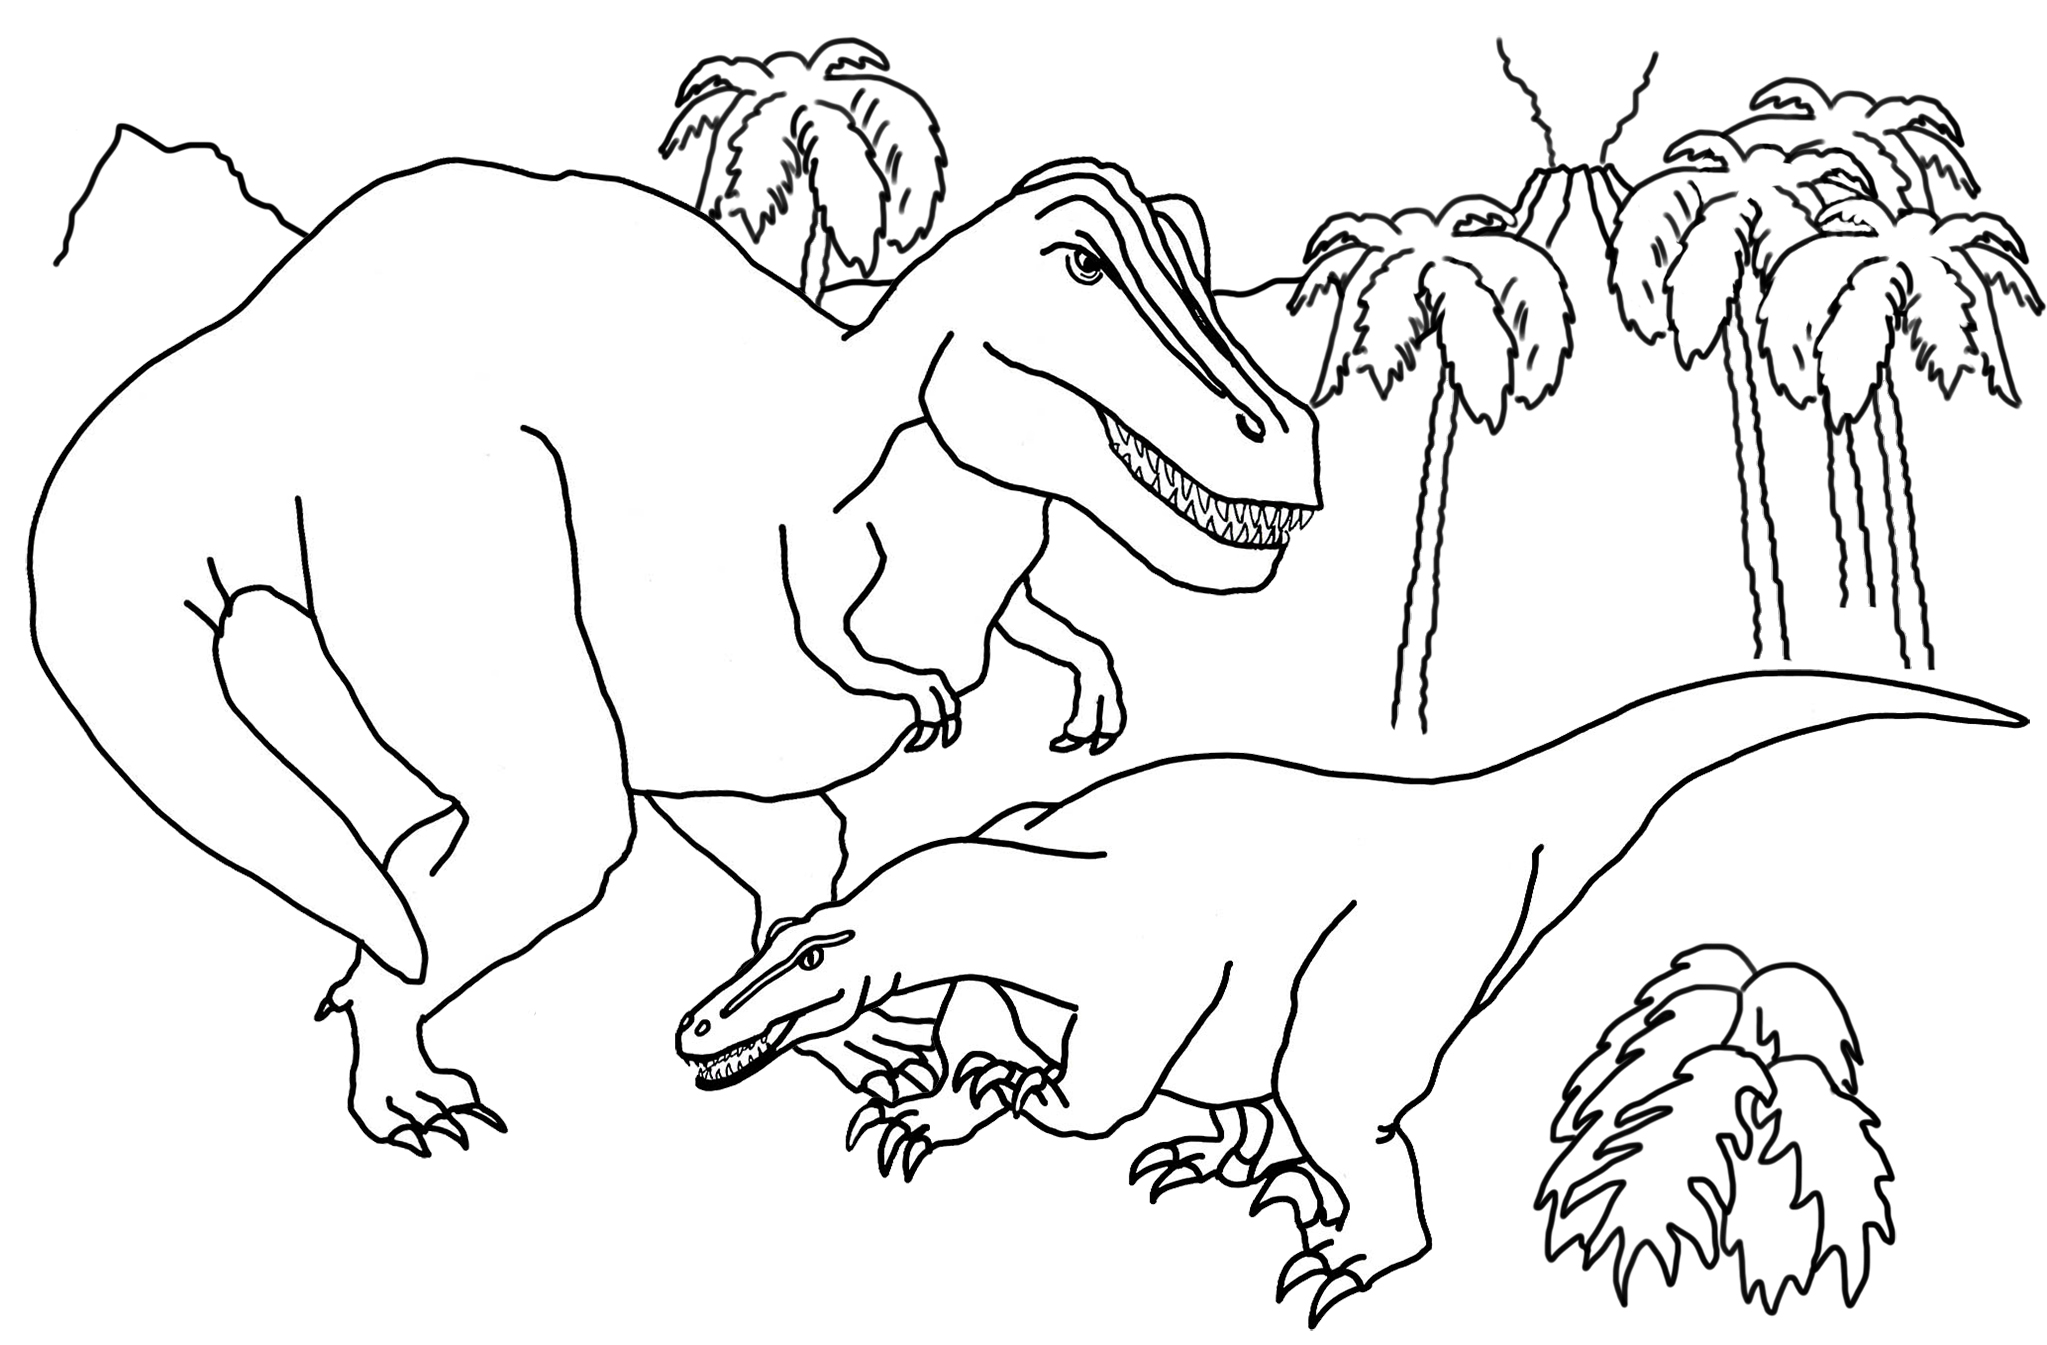 dinosaur coloring page with vulcano